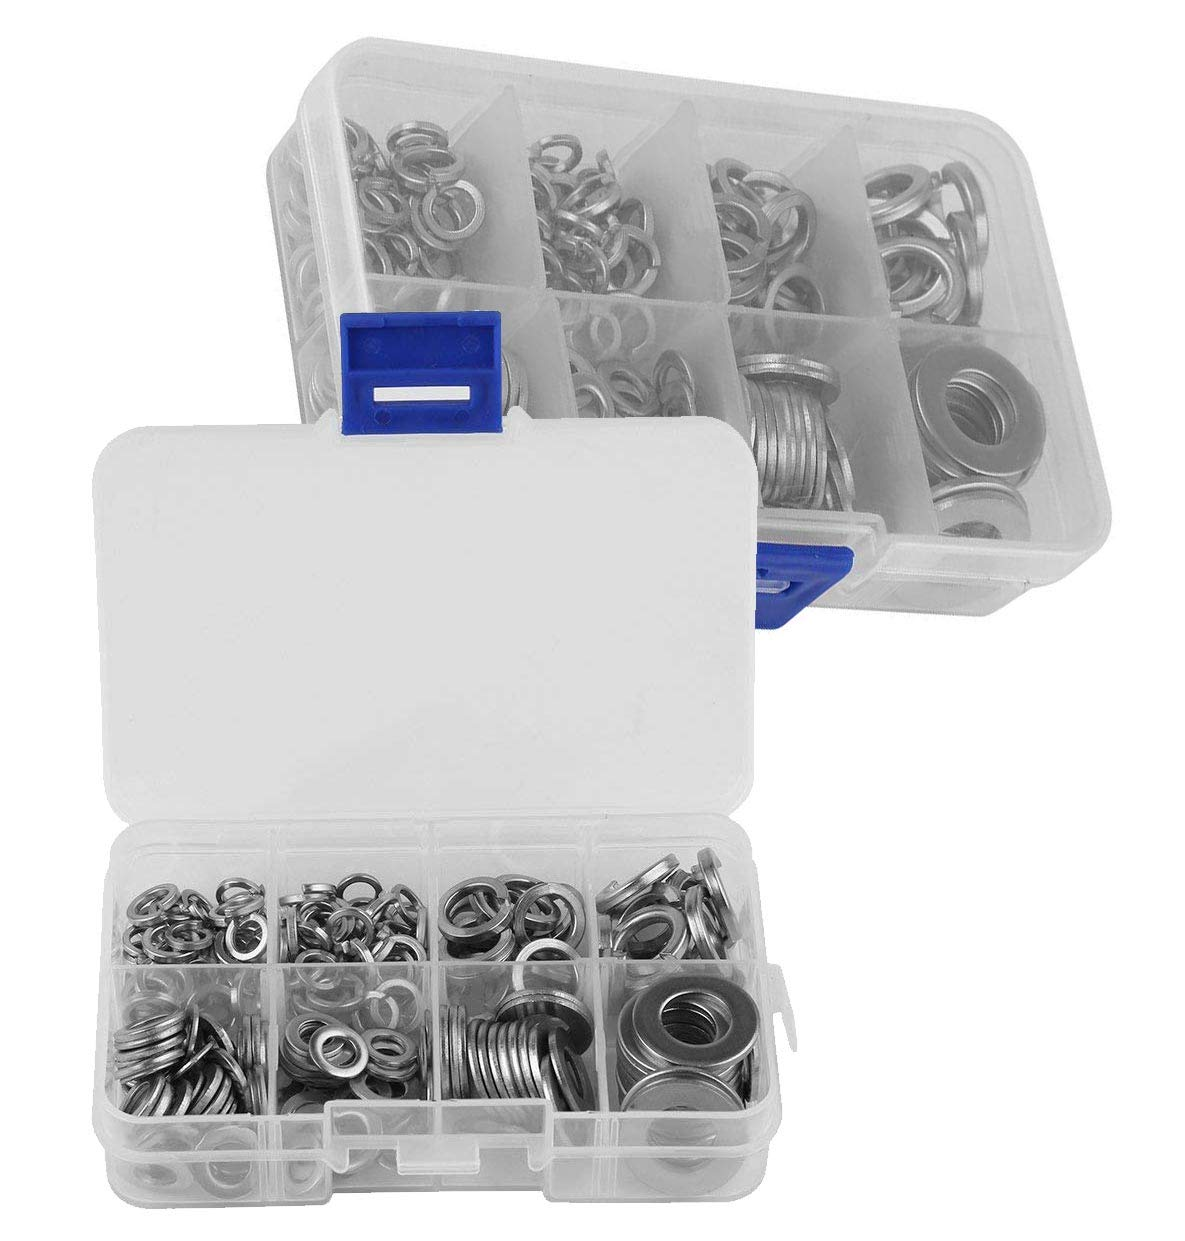 400PC FLAT /& SPRING WASHERS ASSORTED STAINLESS STEEL DIY RUST RESISTANT IN CASE